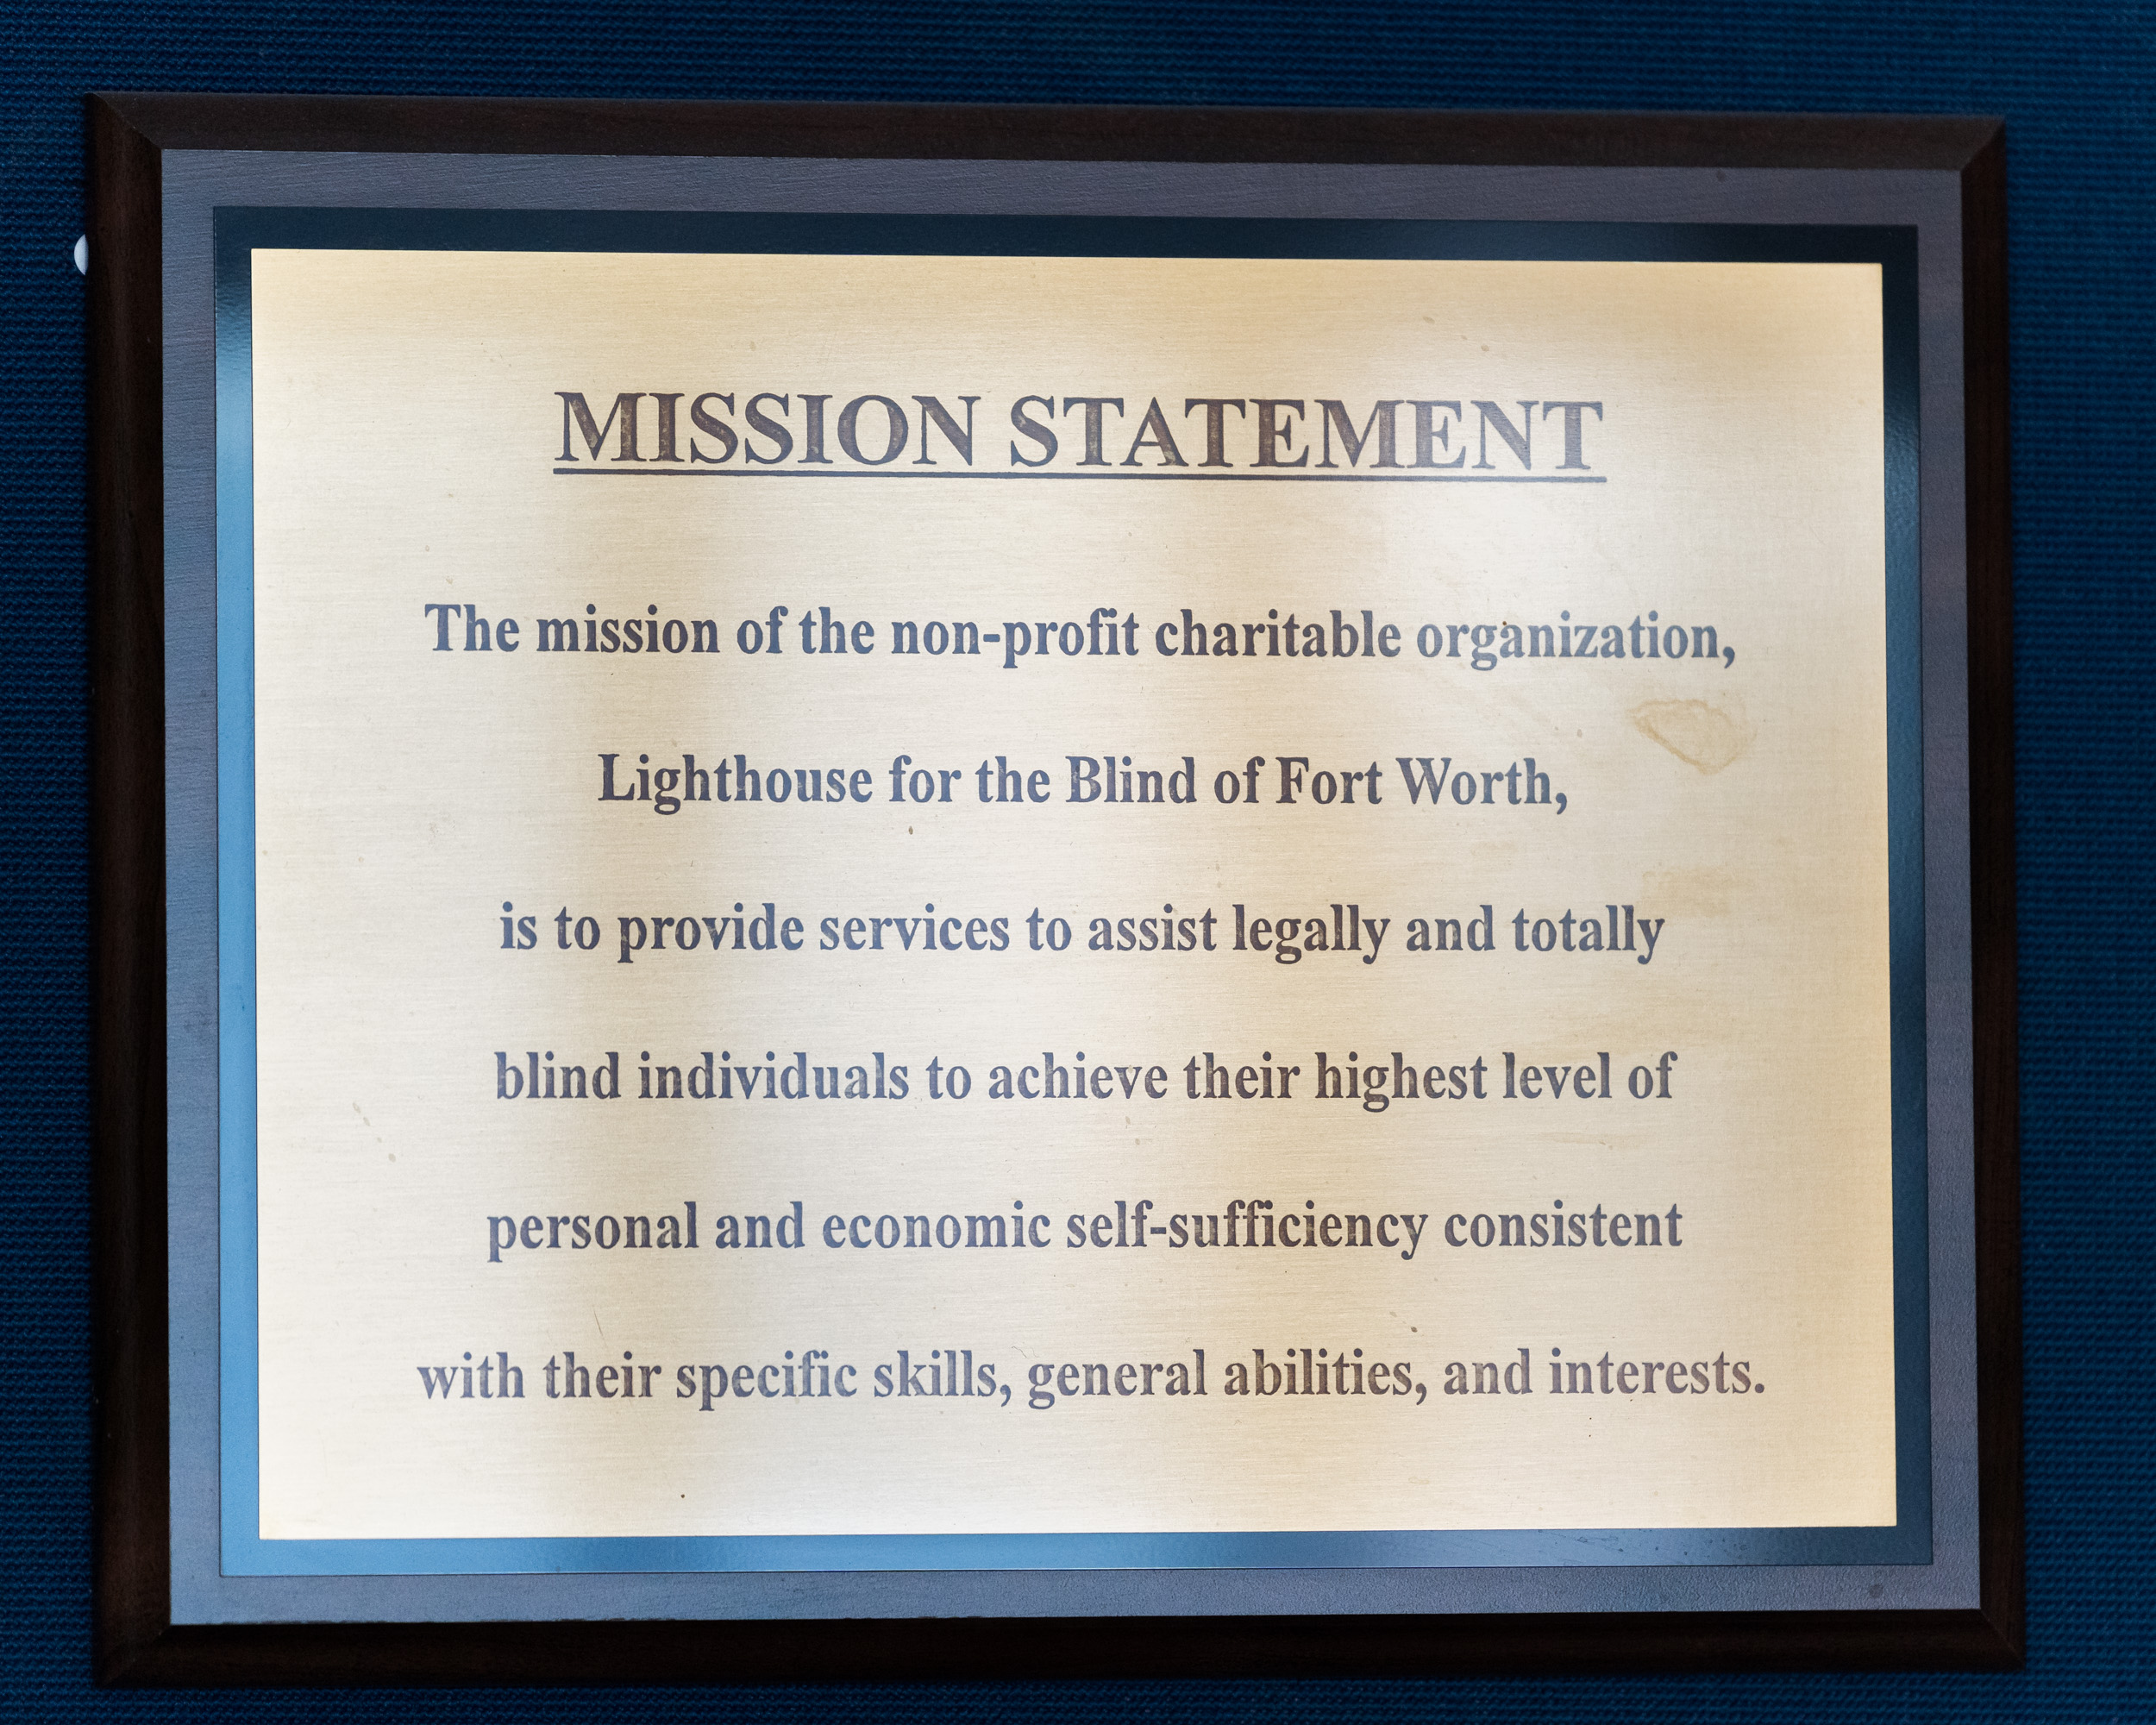 """A plaque that says: """"Mission Statement. The mission of the non-profit charitable organization, Lighthouse for the Blind of Fort Worth, is to provide services to assist legally and totally blind individuals to achieve their highest level of personal and economic self-sufficiency consistent with their specific skills, general abilities, and interests."""""""